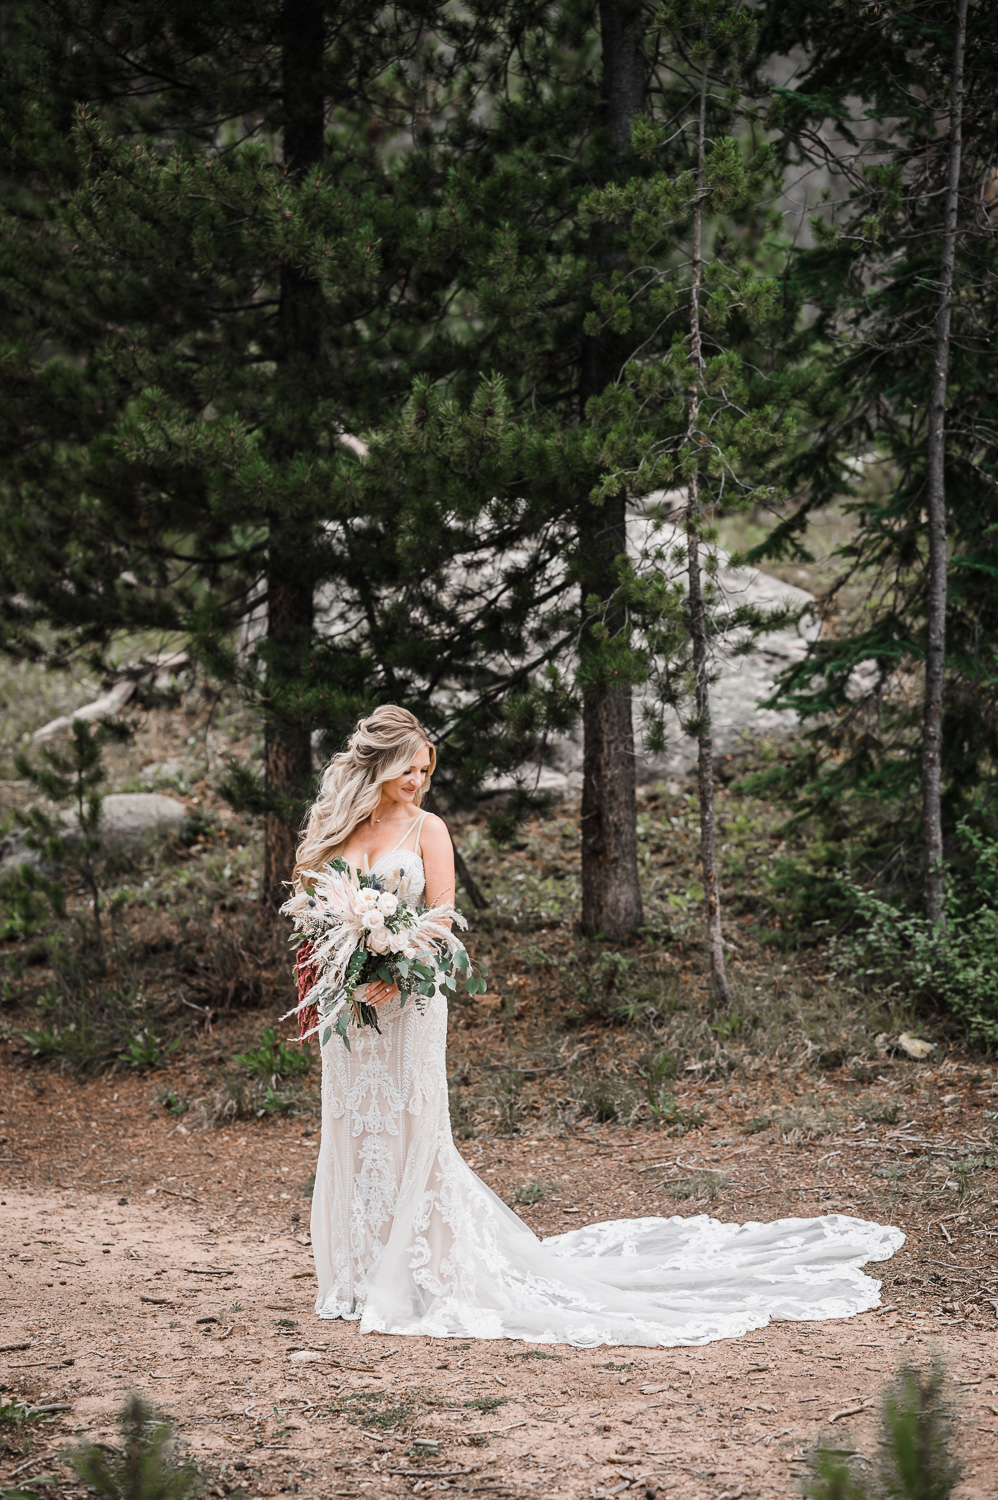 Gorgeous bride at Piney River Ranch wedding in Vail CO